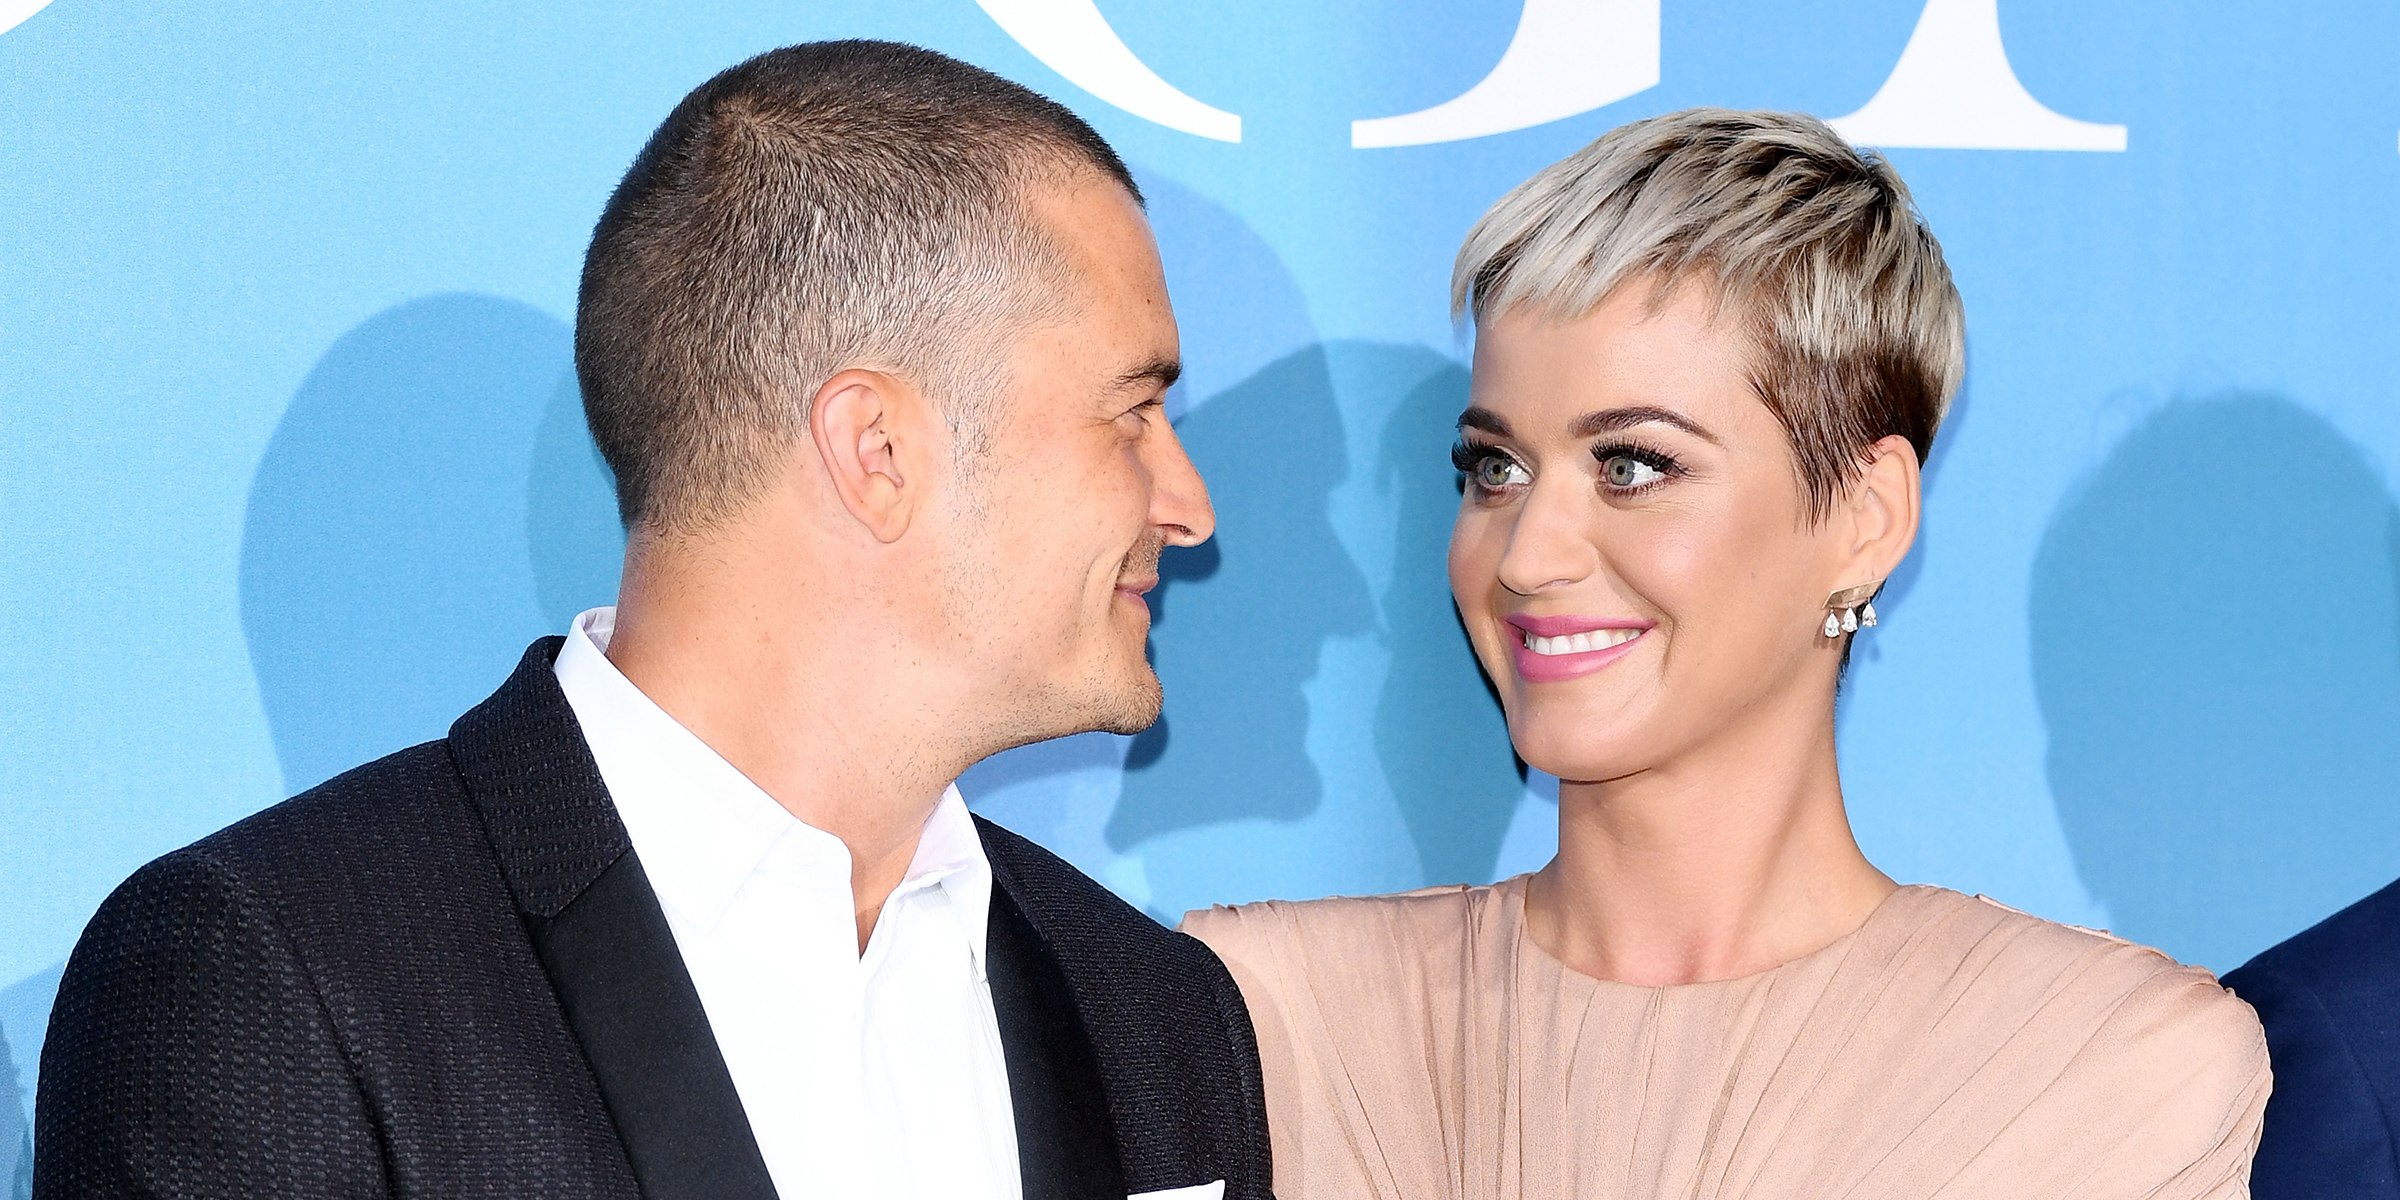 Orlando Bloom on his relationship with Katy Perry: 'It's a mountain to climb'